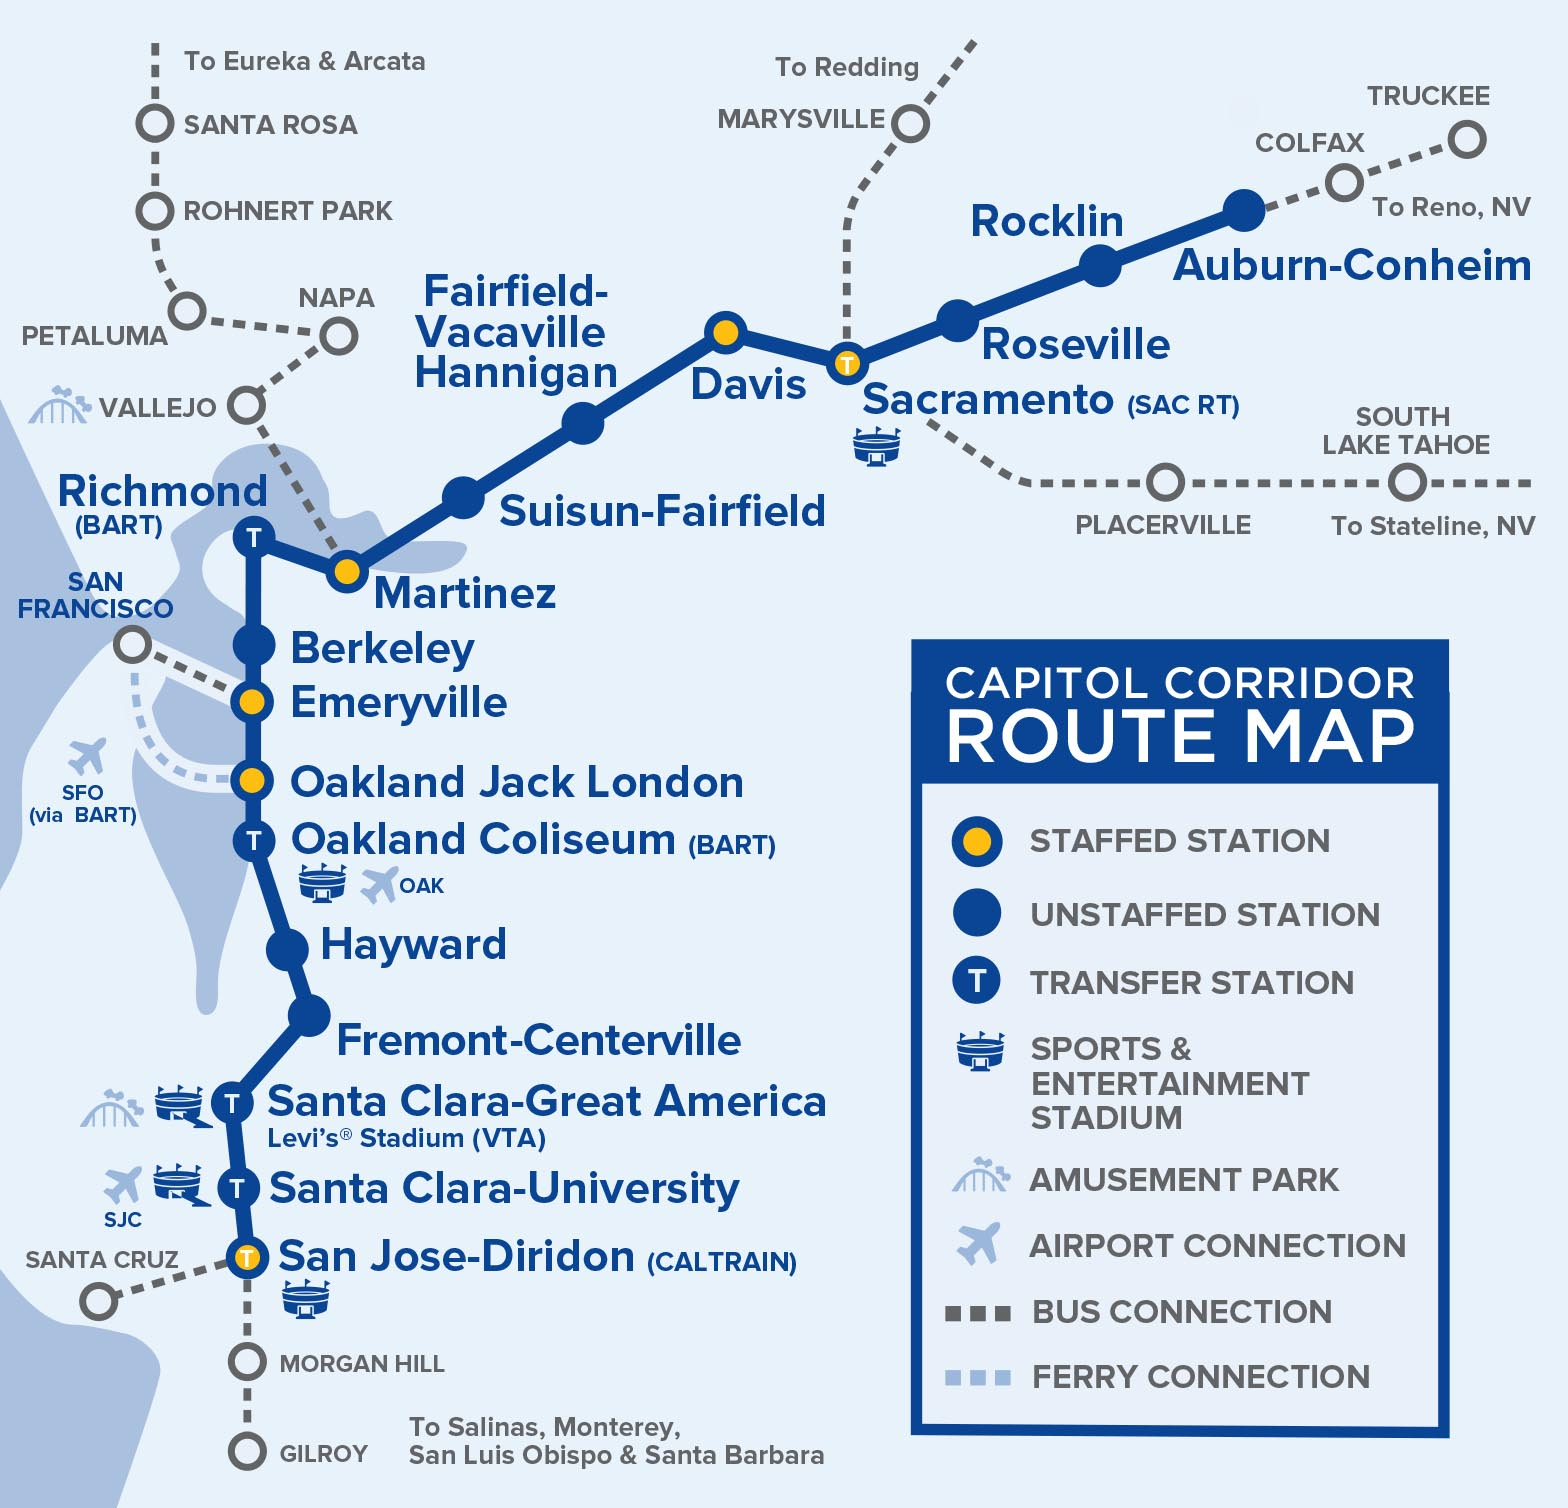 A map of the Capitol Corridor service. The bridge is between Martinez and Suisun-Fairfield stations. But it presents a choke point for the entire system.